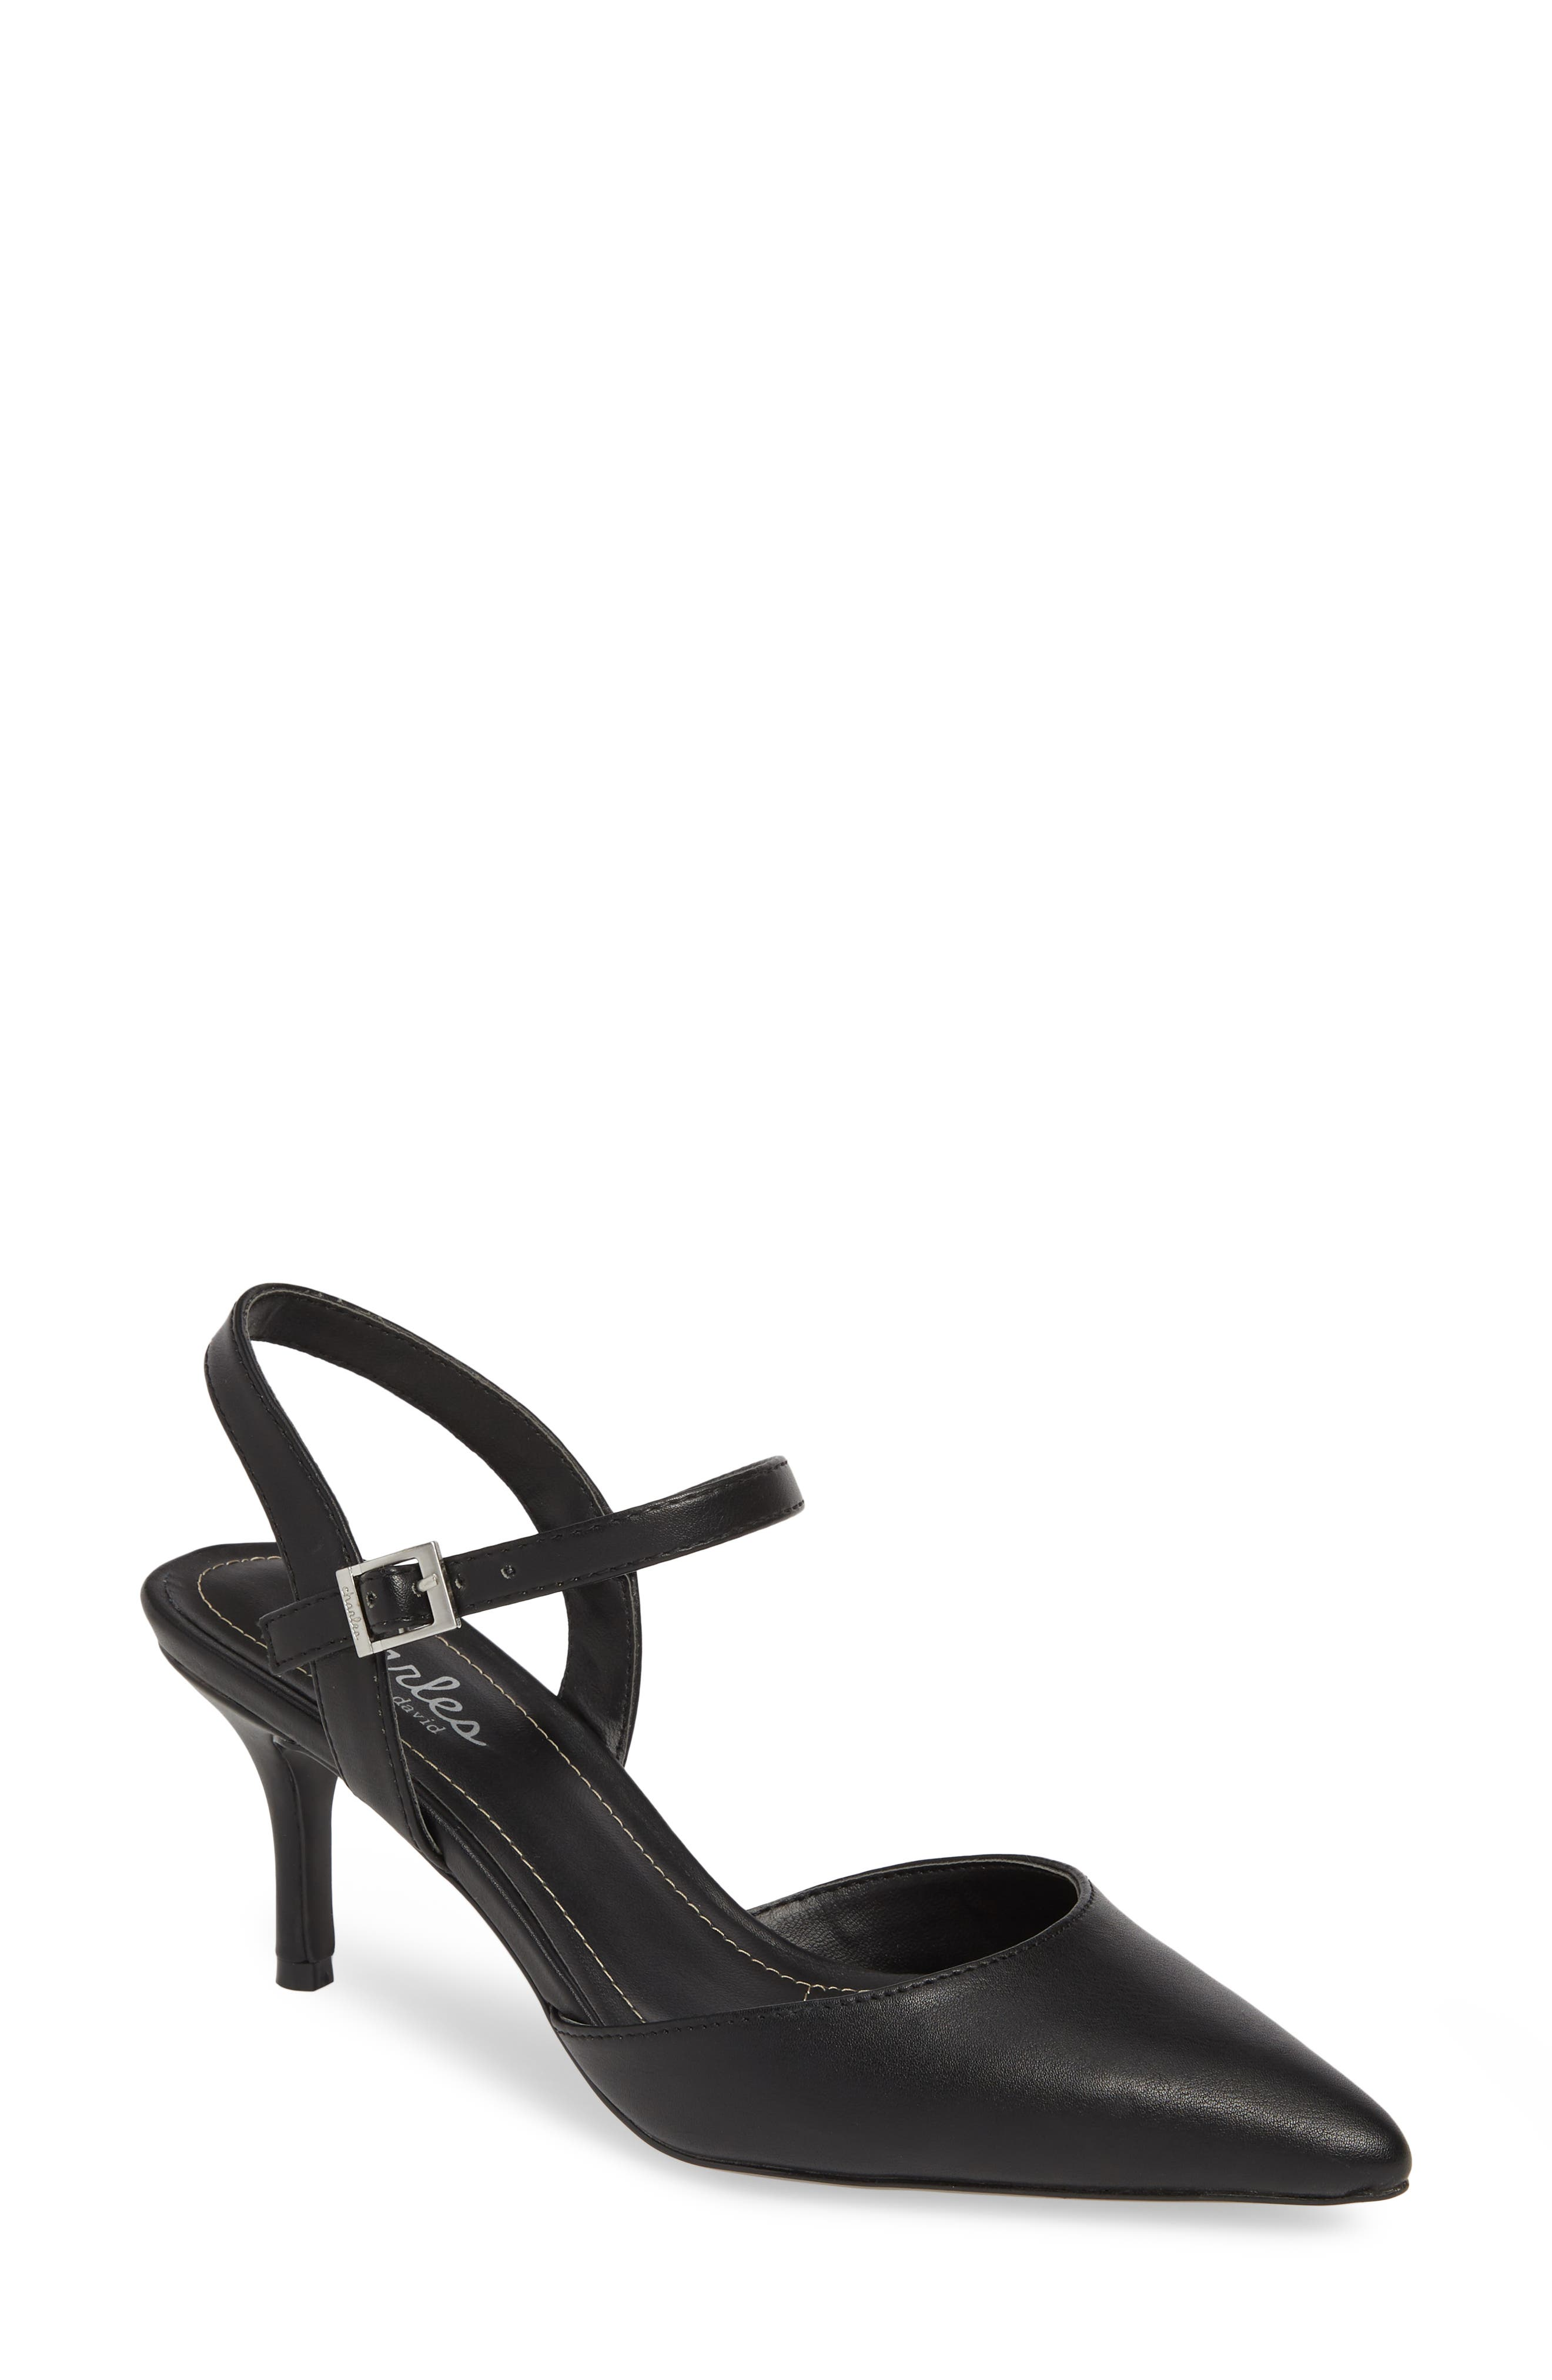 CHARLES BY CHARLES DAVID Ankle Strap Pump, Main, color, BLACK FAUX LEATHER